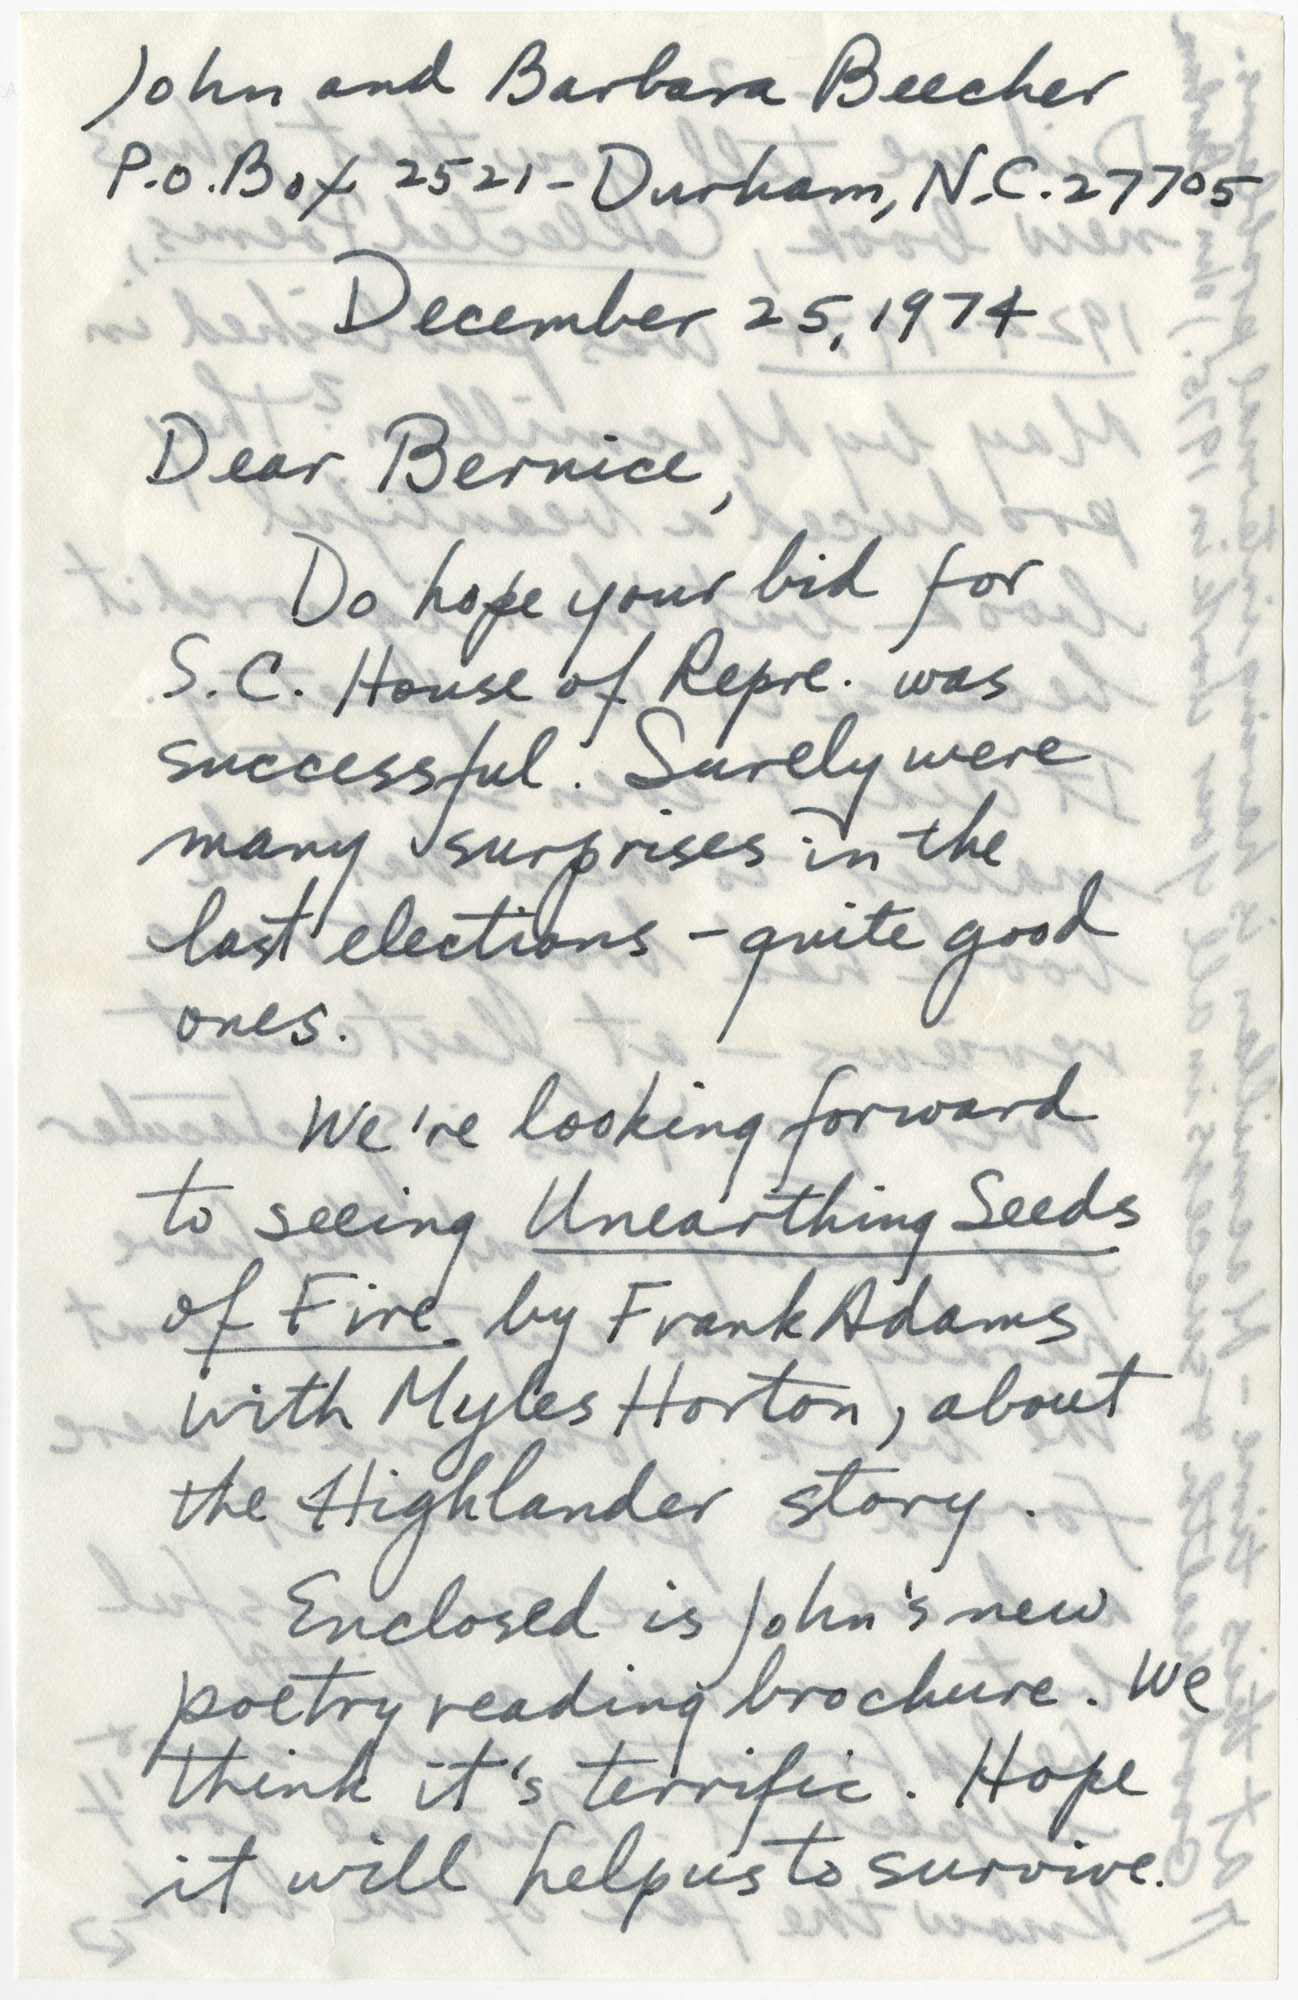 Letter from John and Barbara Beecher to Bernice Robinson, December 25, 1974